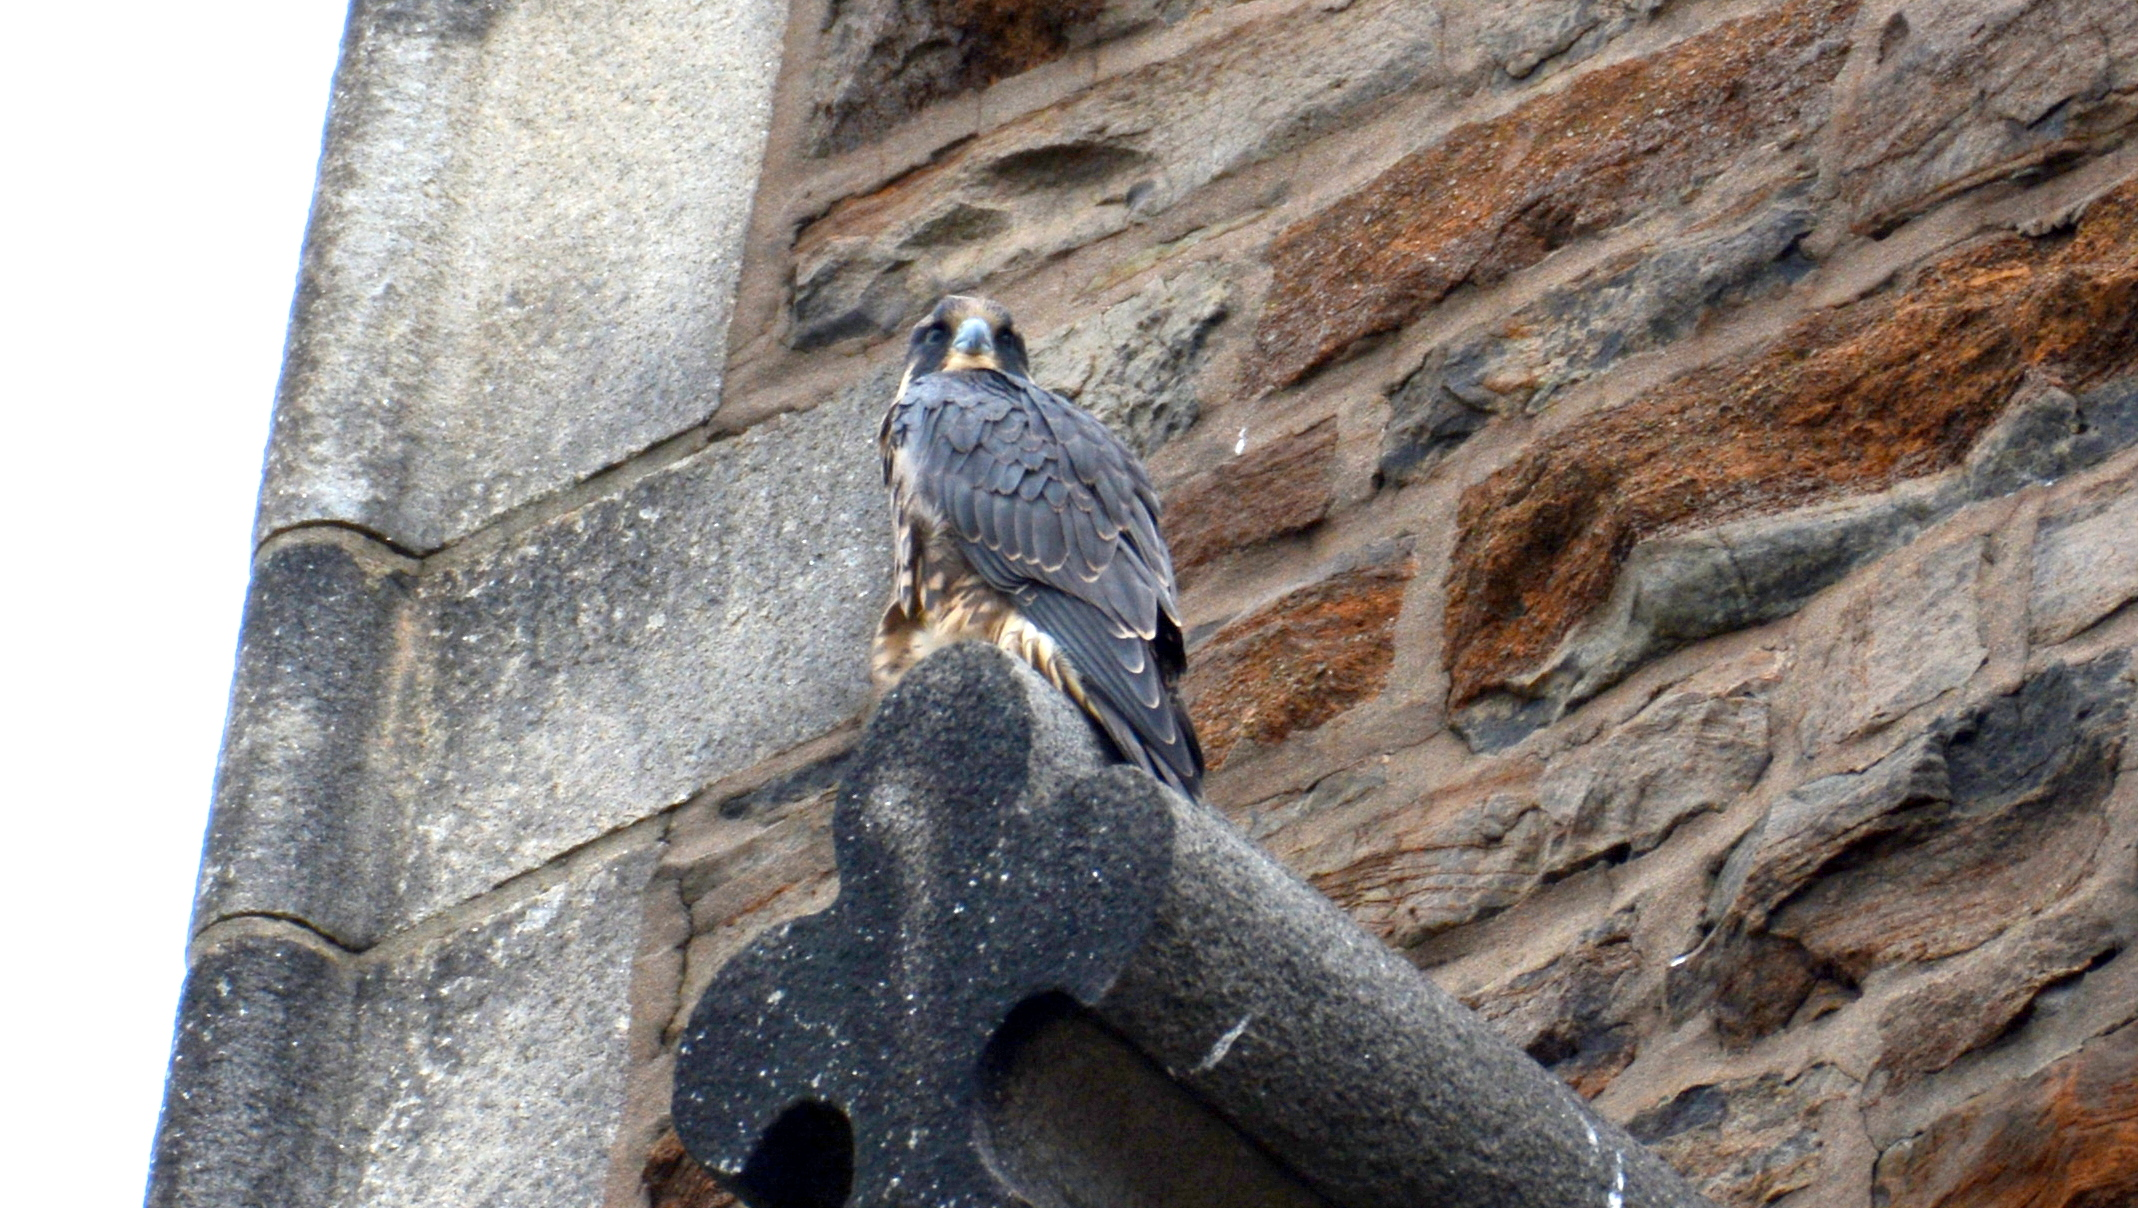 Perched on the lower steeple ledge